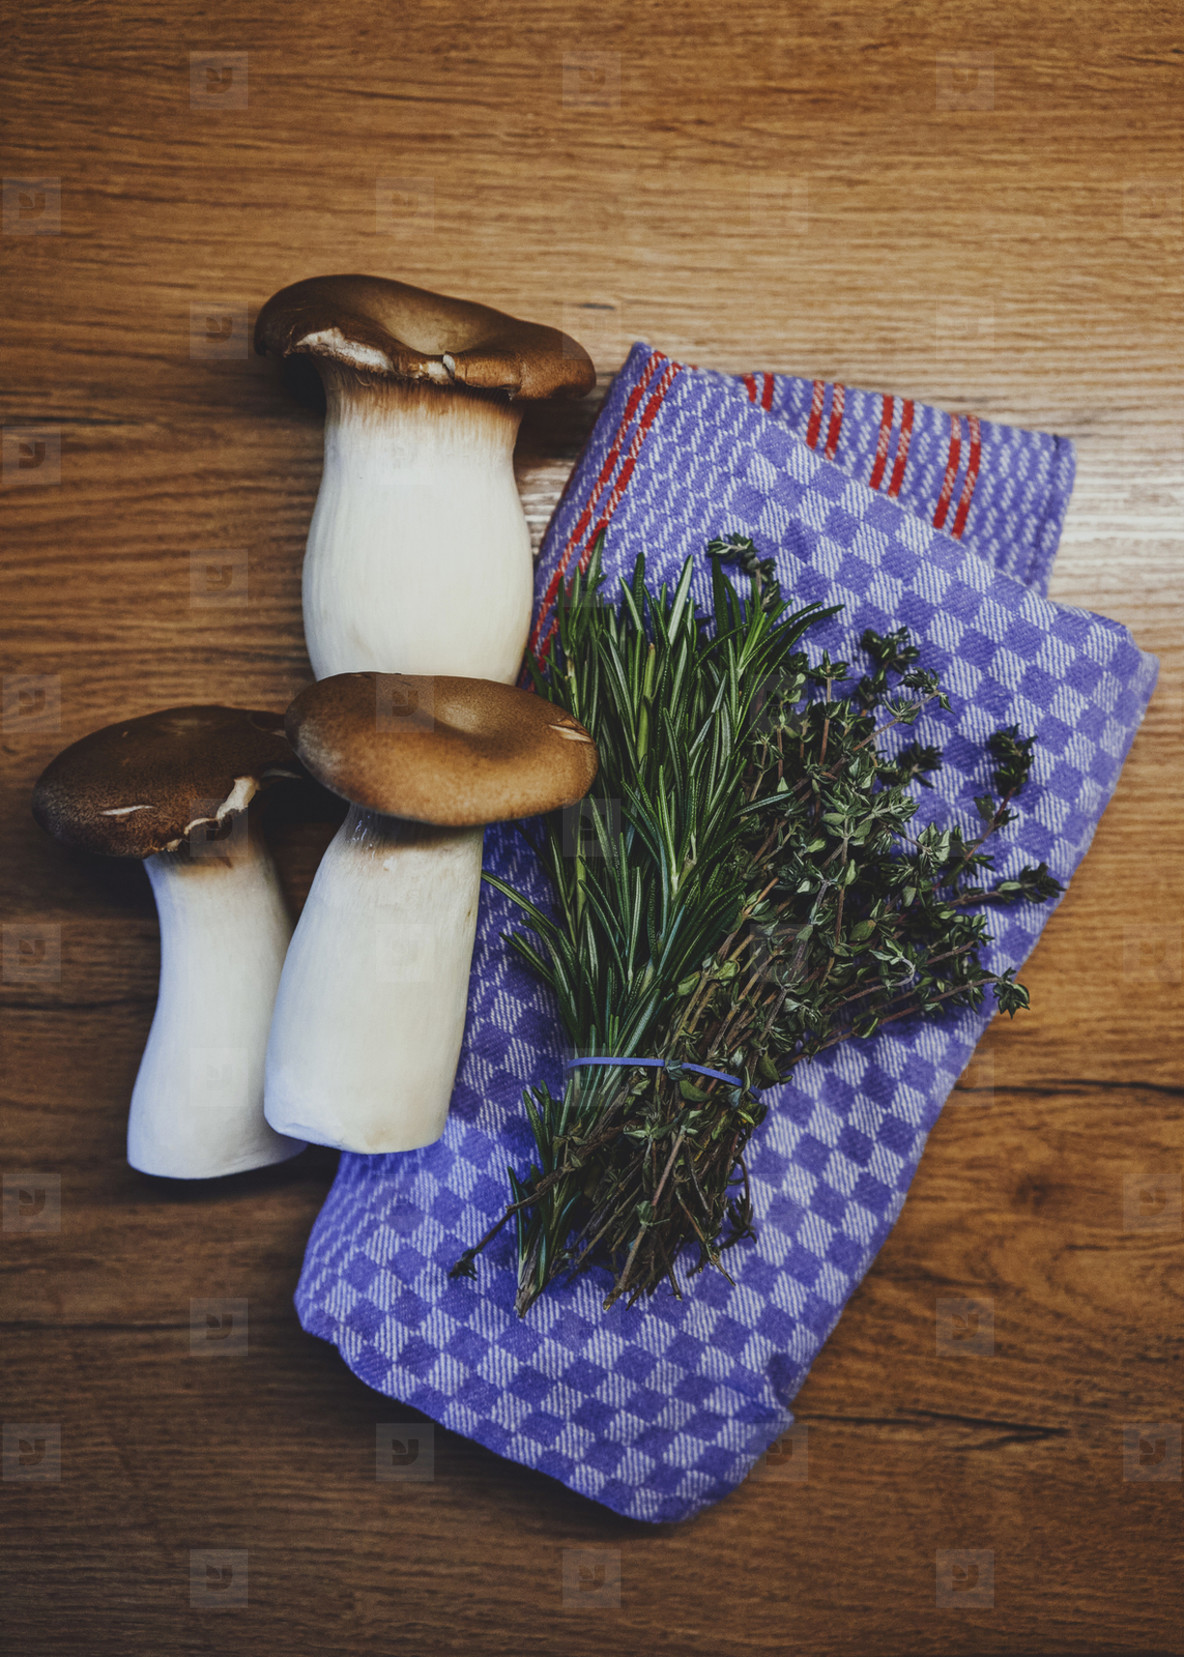 Fresh king oyster mushrooms and herbs on kitchen towel on wood table